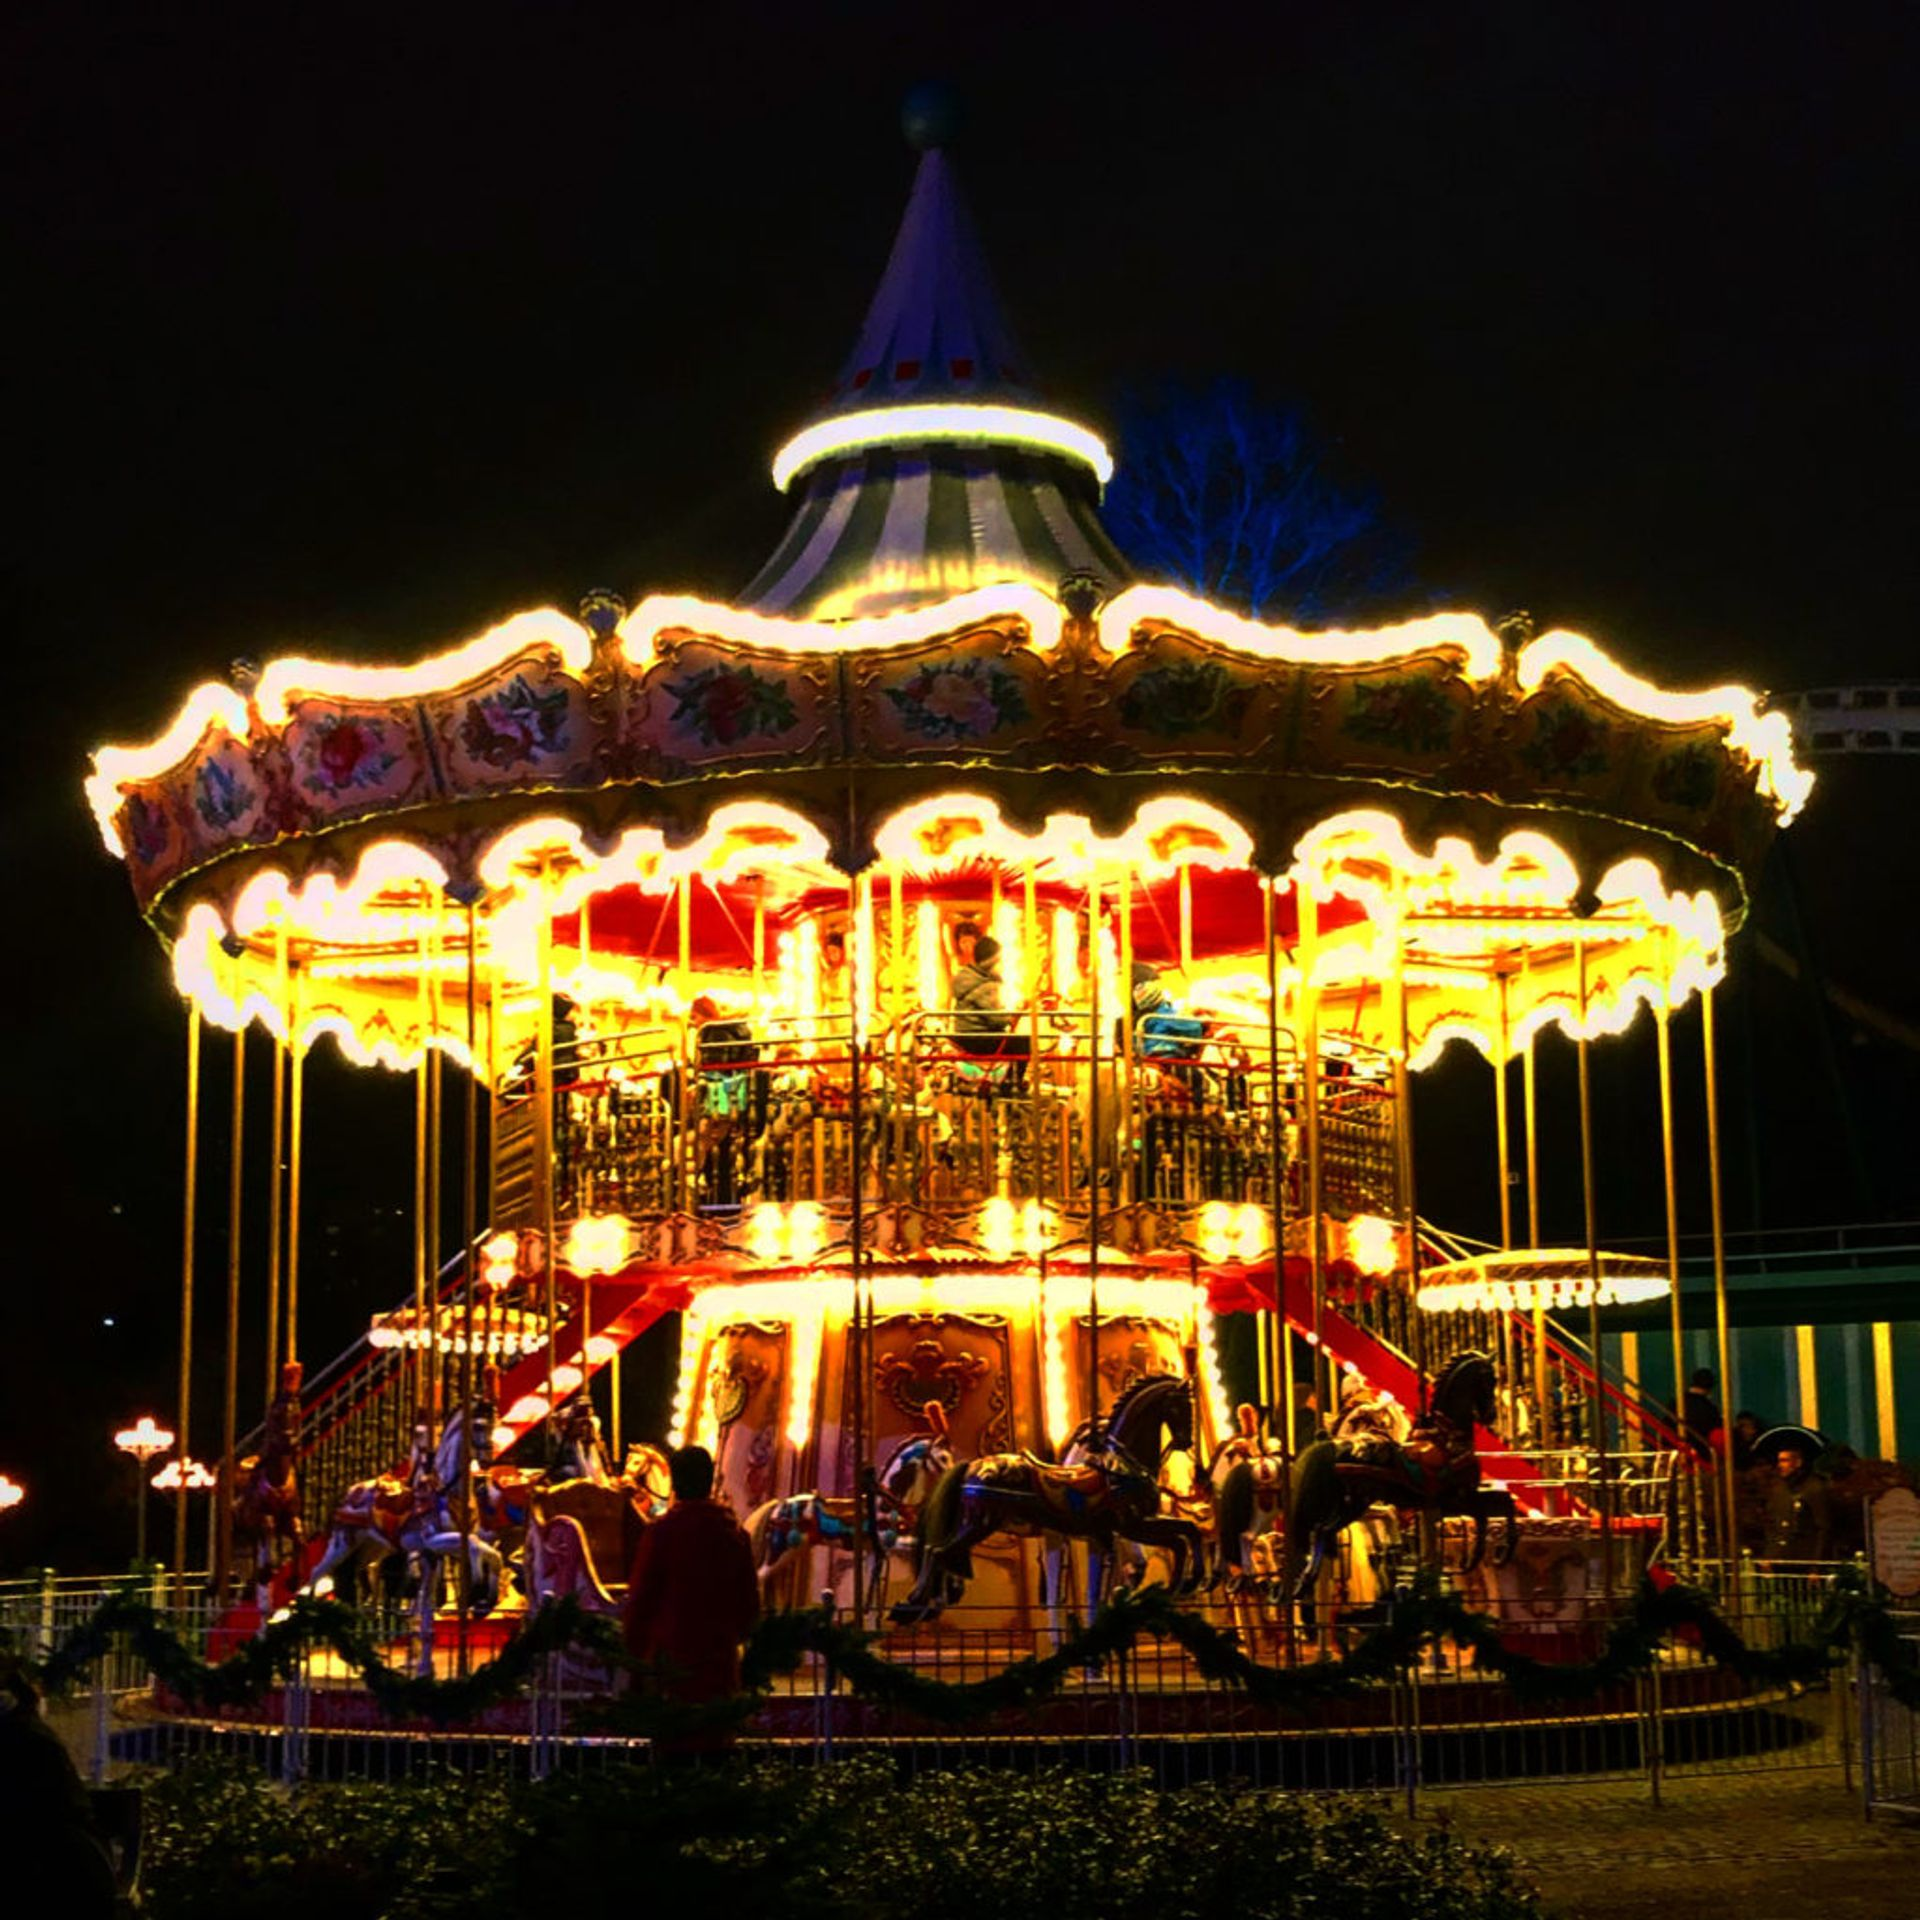 A carousel lit up at night.